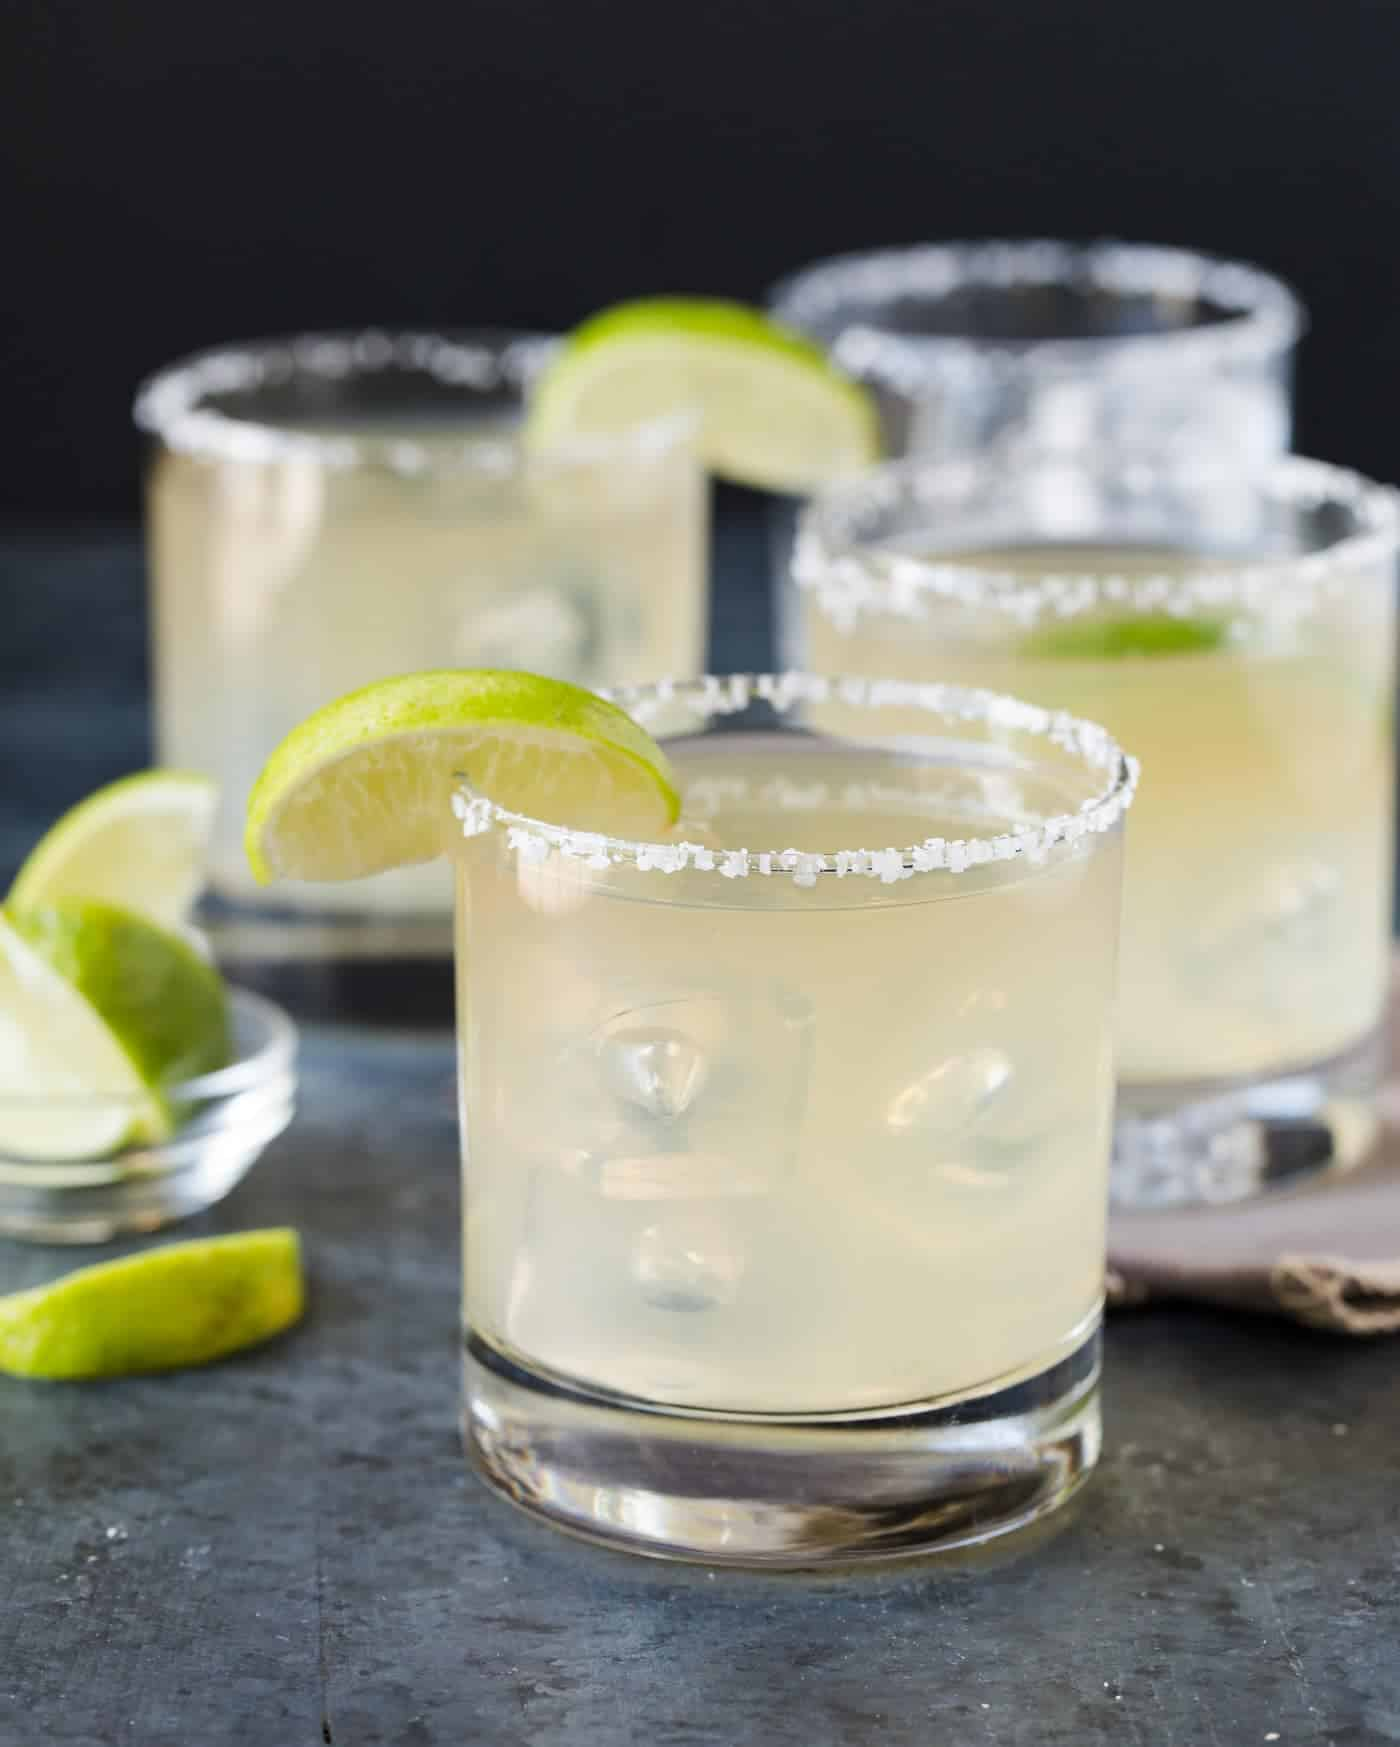 This Golden Margarita hails straight from one of our favorite resorts in Mexico. Authentic, delicious and easy to multiply as a batch cocktail!